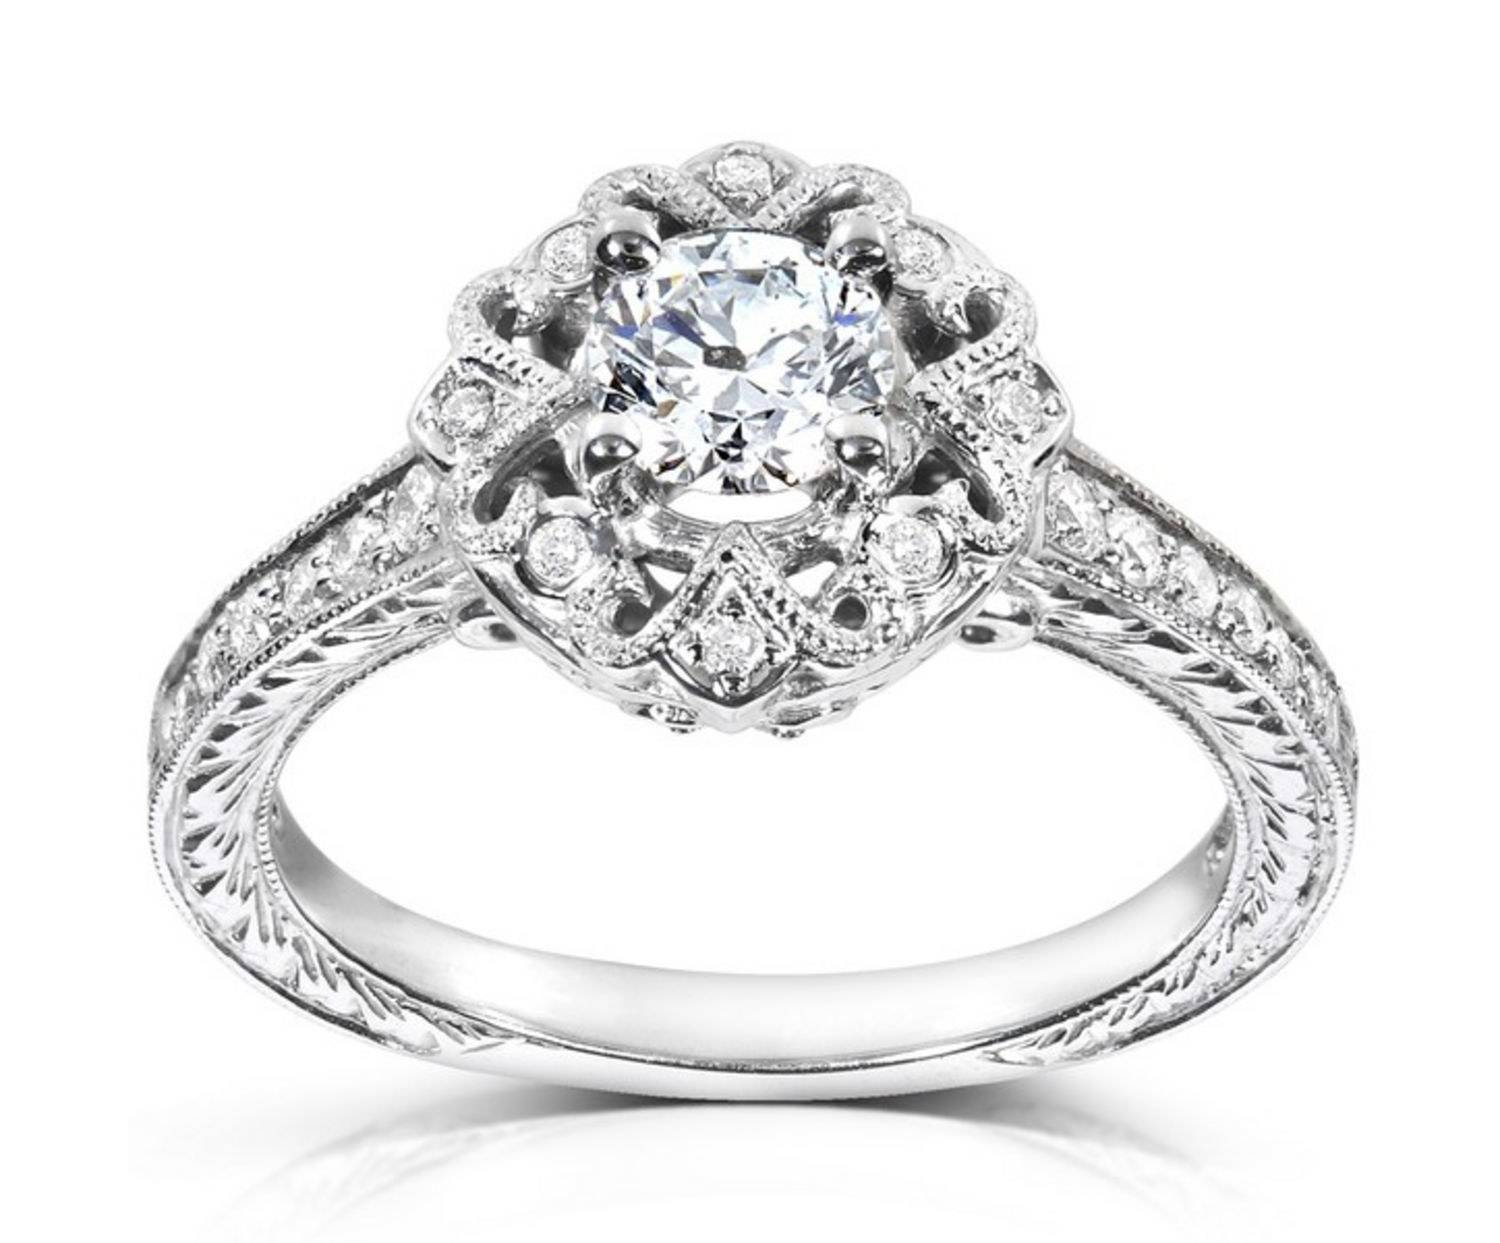 Affordable Engagement Rings Under $1,000 | Glamour For Houston Engagement Rings (Gallery 6 of 15)